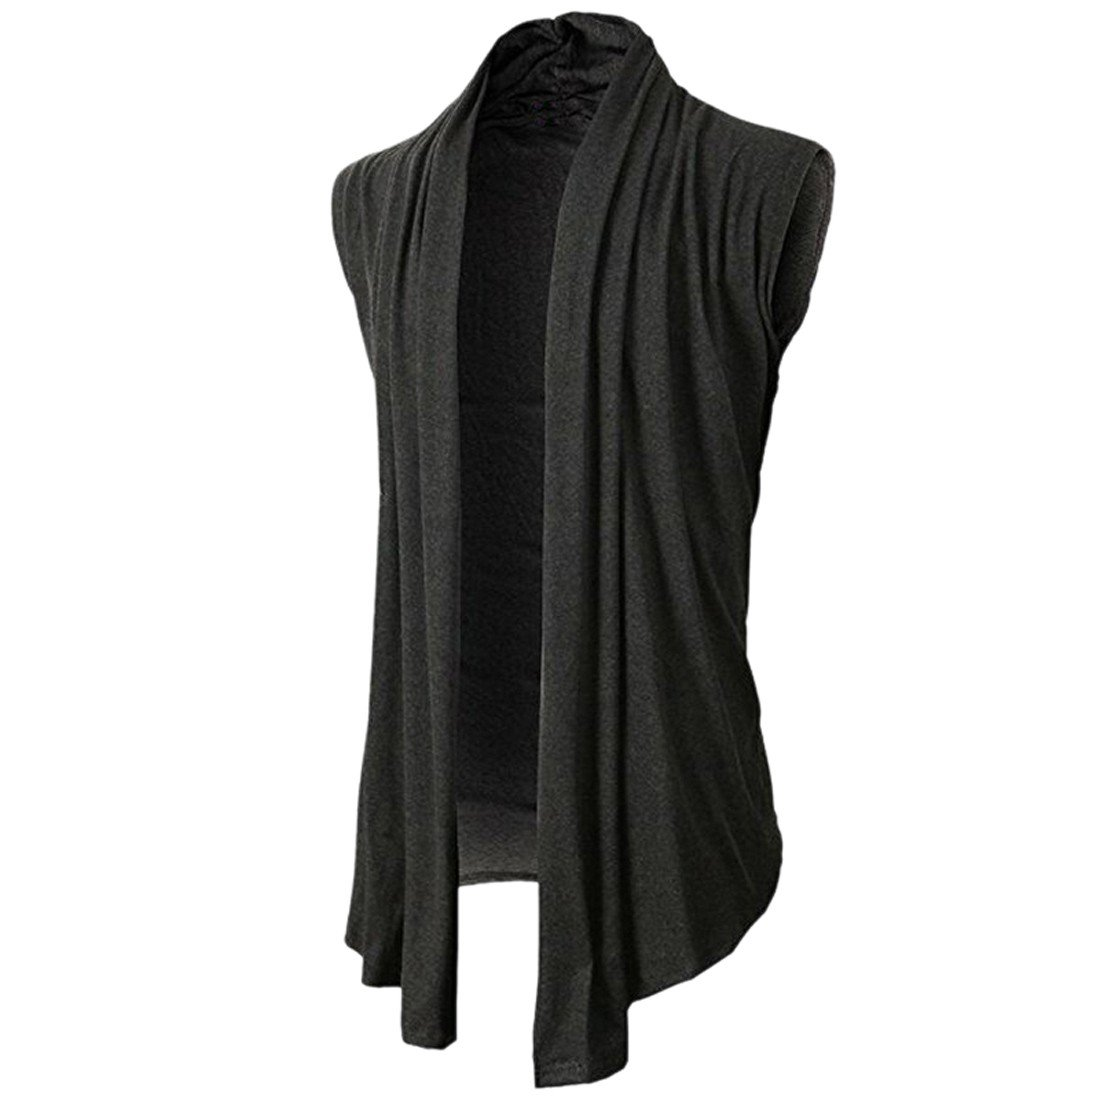 Ai.Moichien Men's Summer Ruffle Shawl Sleeveless Cardigan Lightweight Cotton Long Length Drape Cape Vest E6051S3663/2TWO